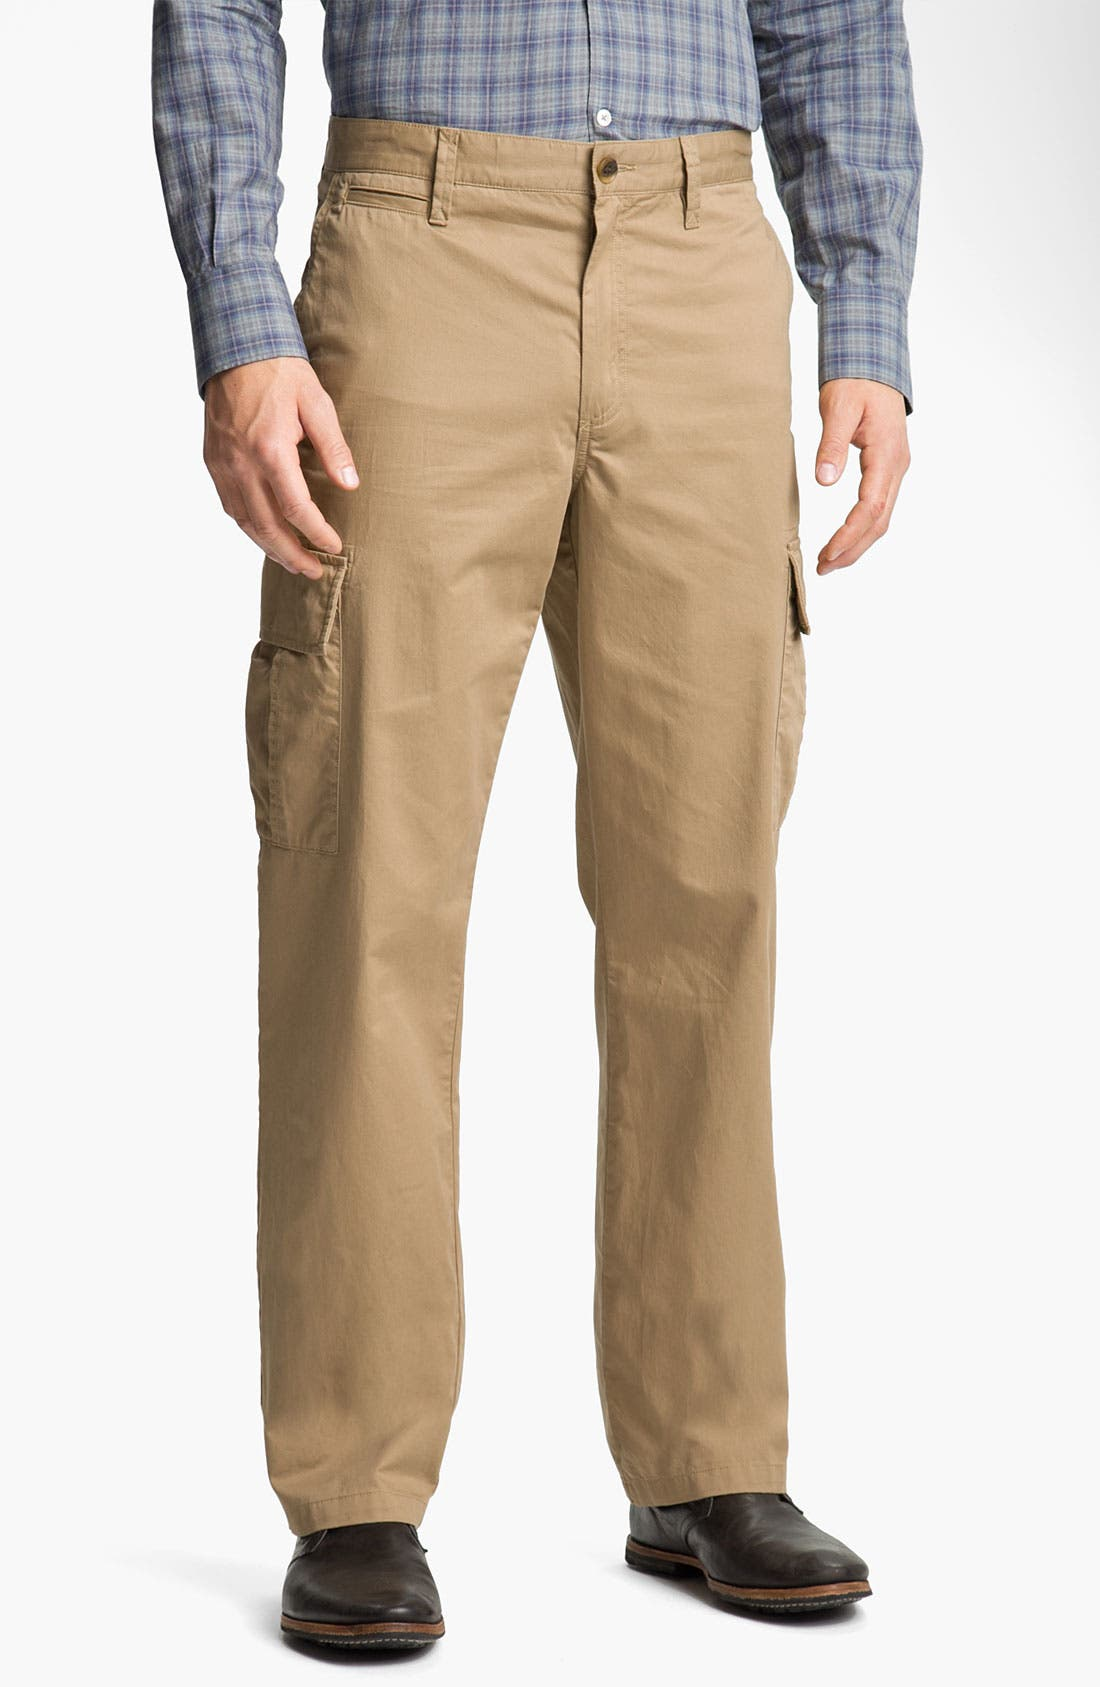 Alternate Image 1 Selected - Wallin & Bros. 'Fulham' Cargo Pants